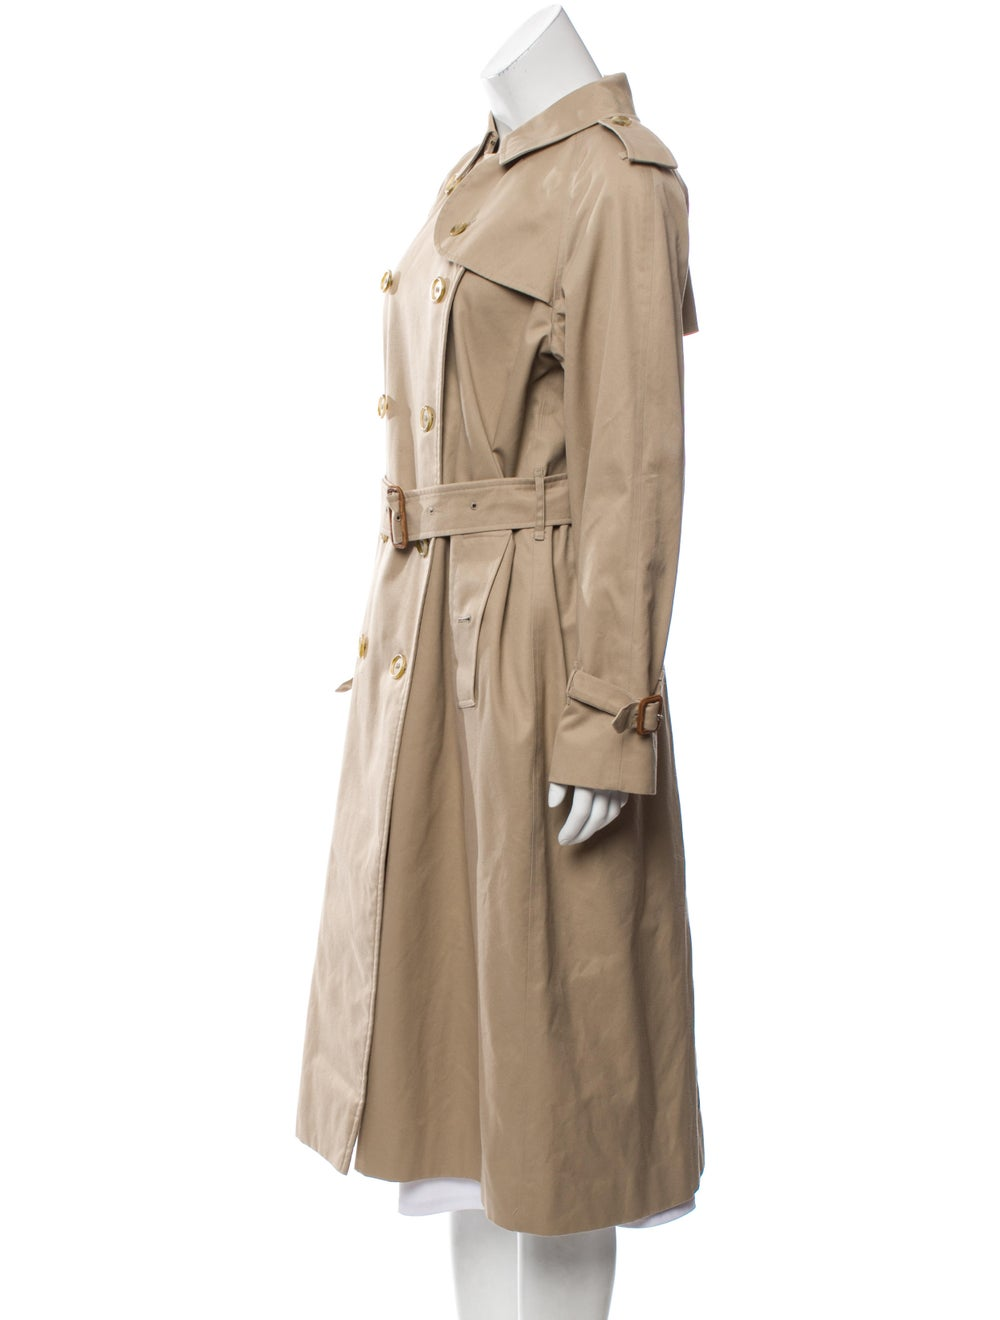 Burberry Vintage Trench Coat Beige - image 2